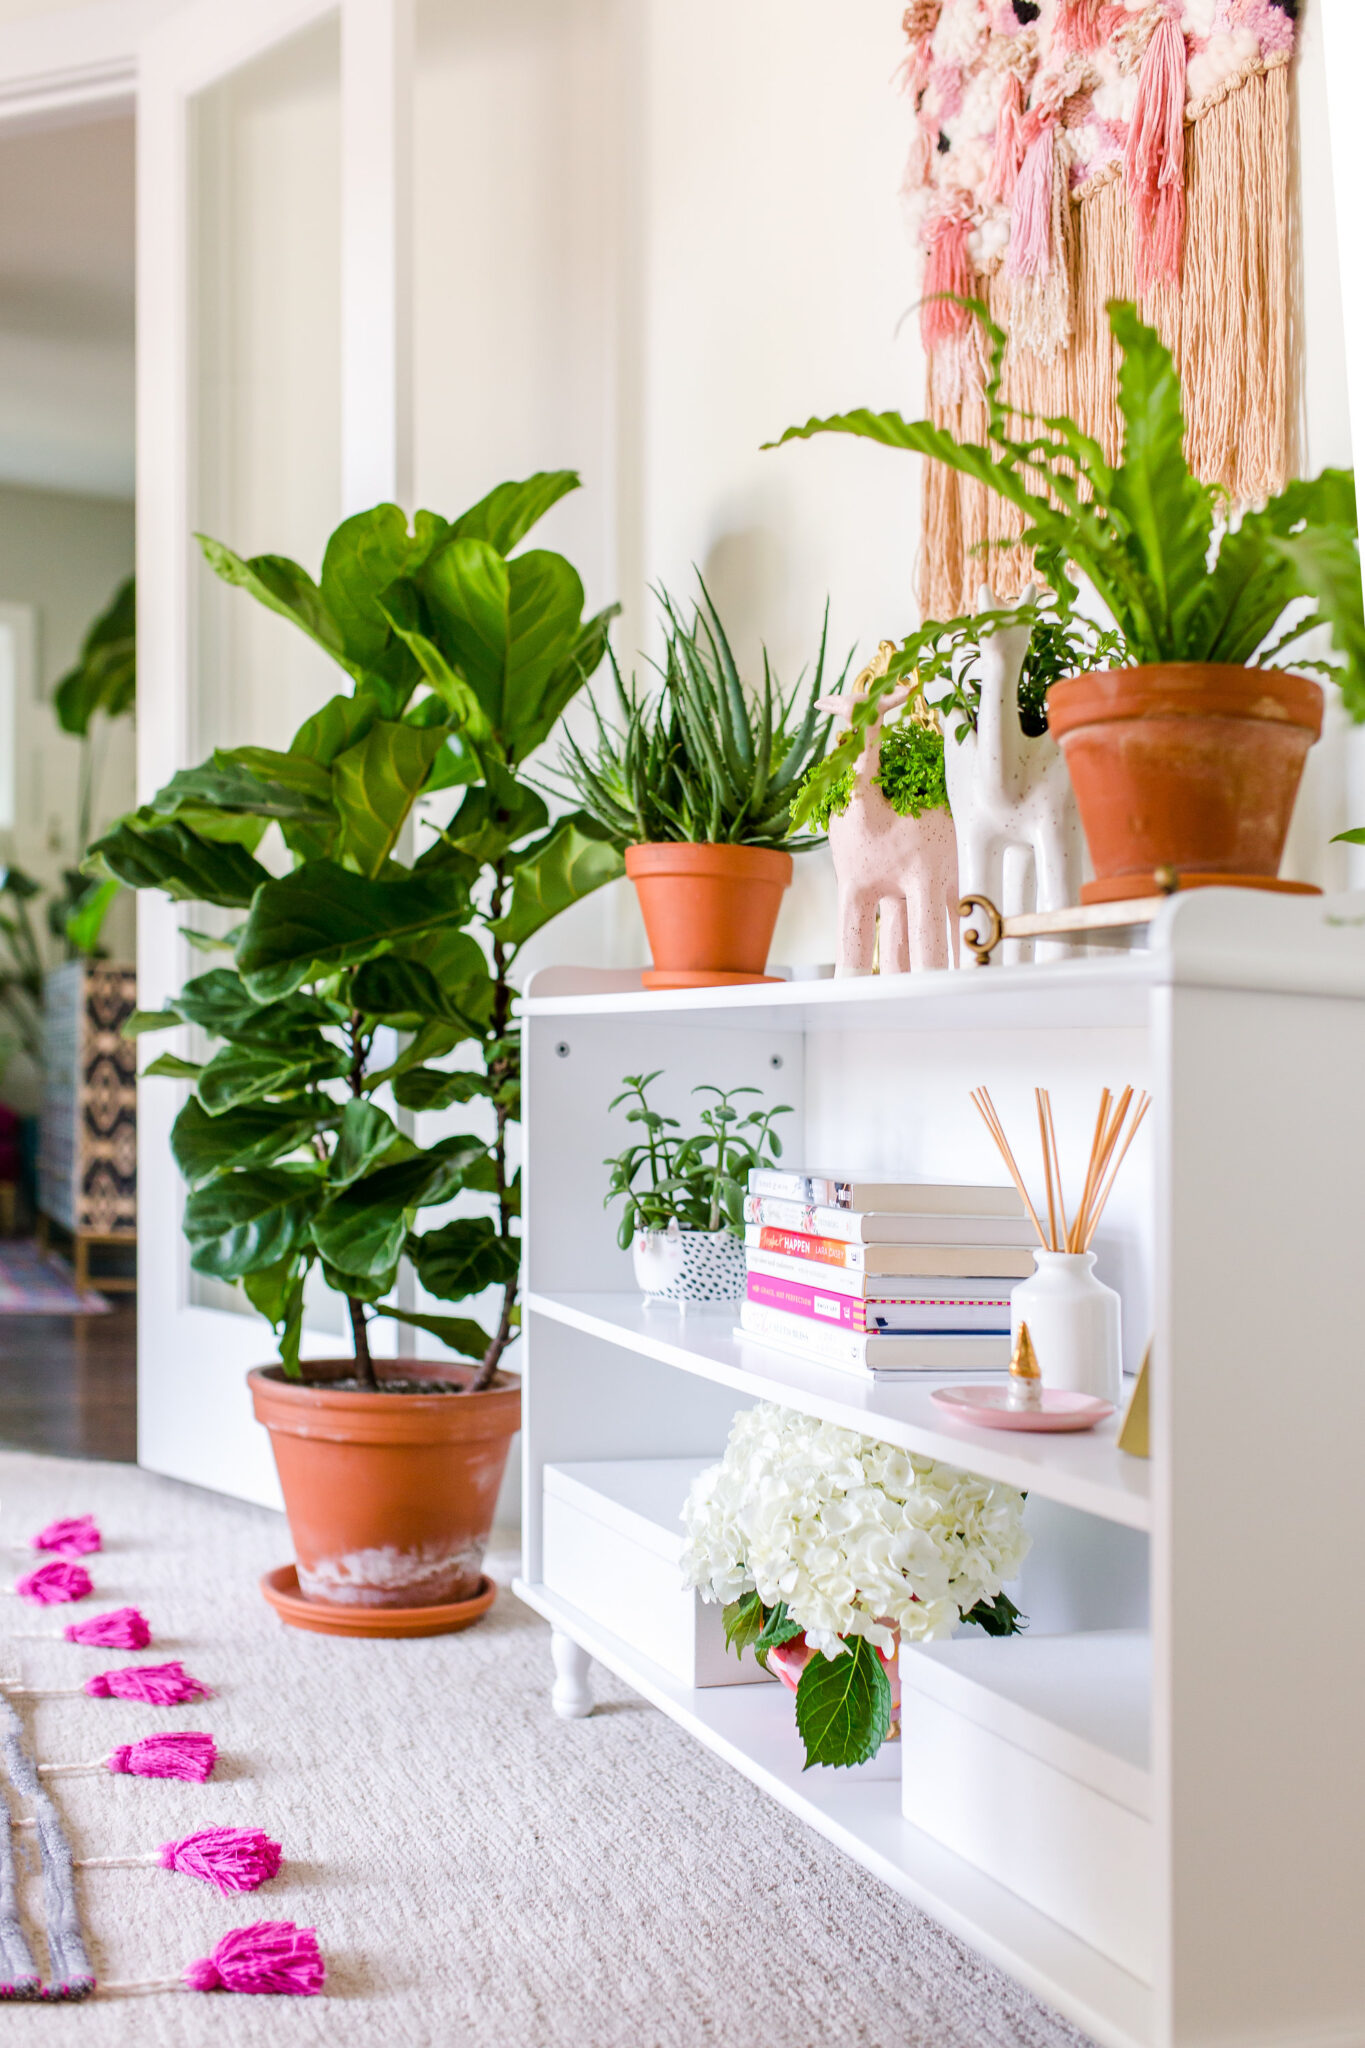 bloomscape plants fiddle leaf fig in home office on white shelves